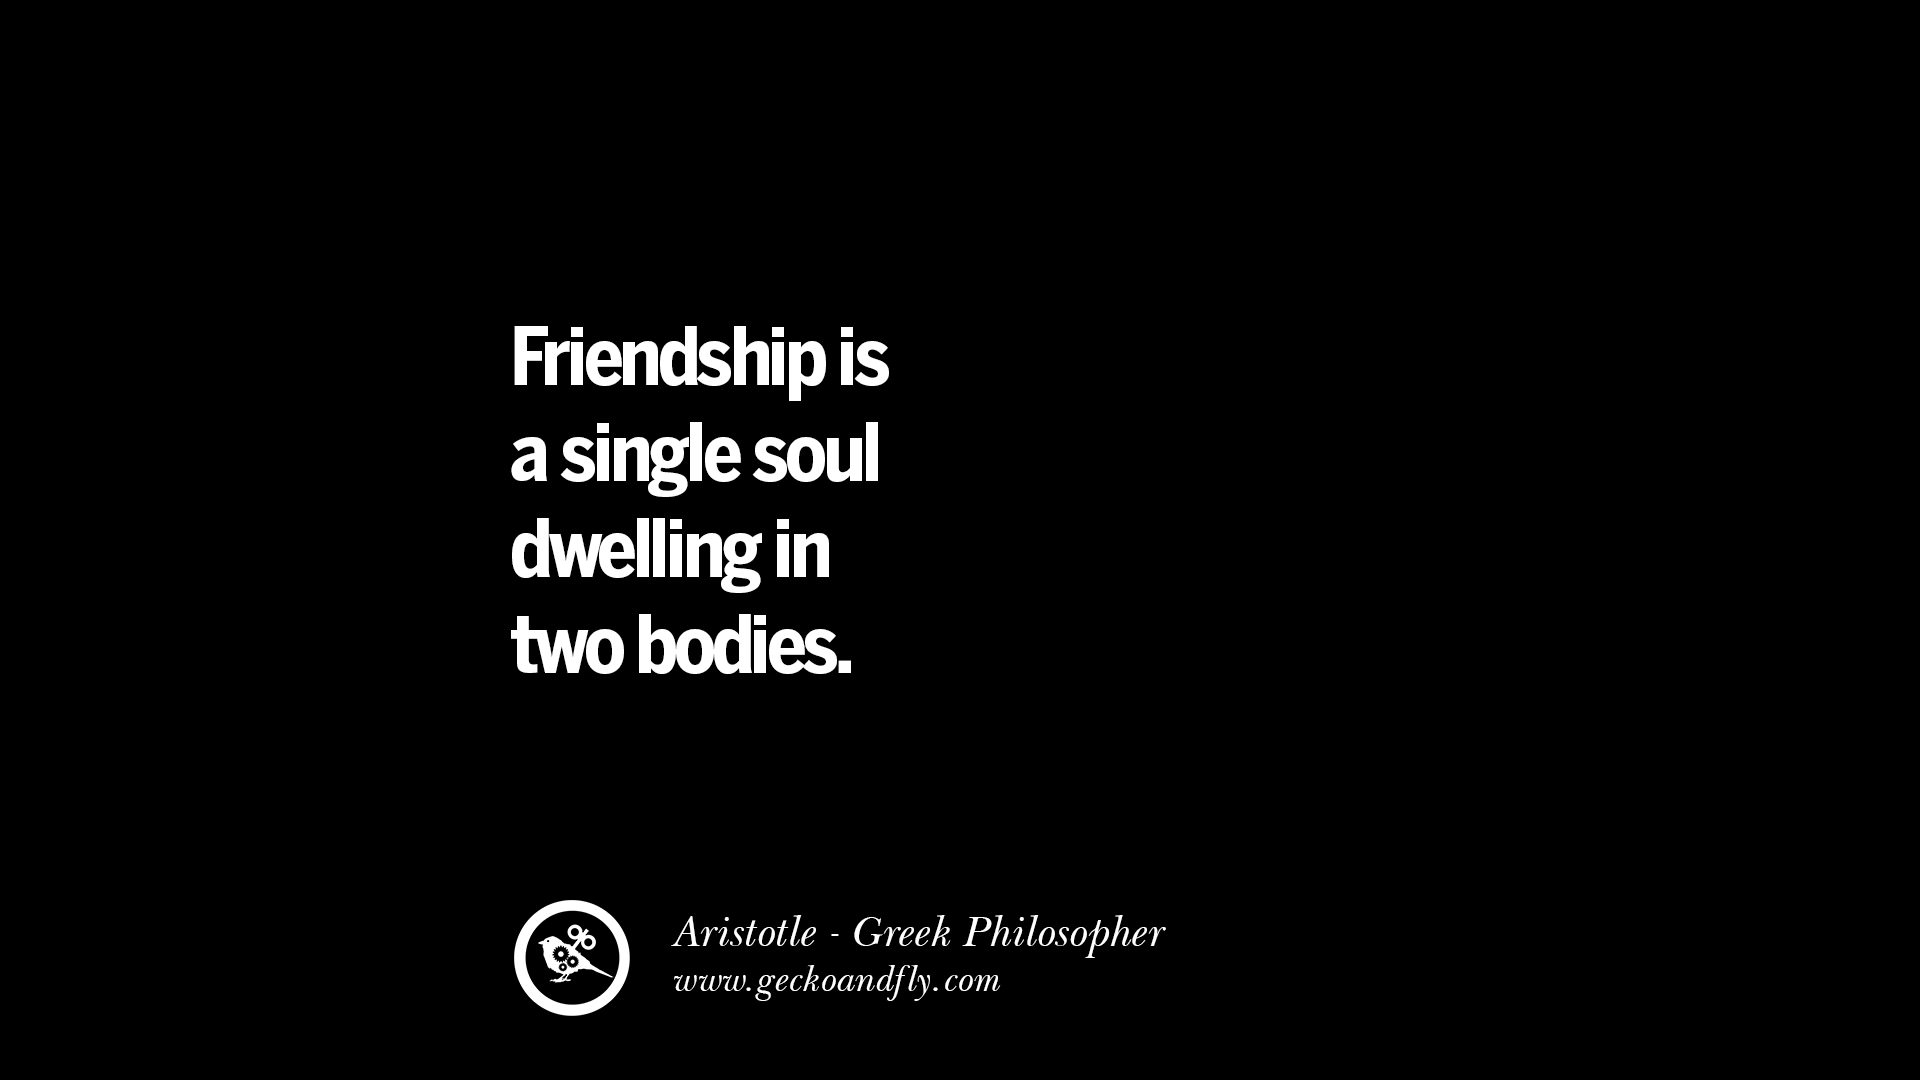 A Quote About Friendship New 40 Famous Aristotle Quotes On Ethics Love Life Politics And